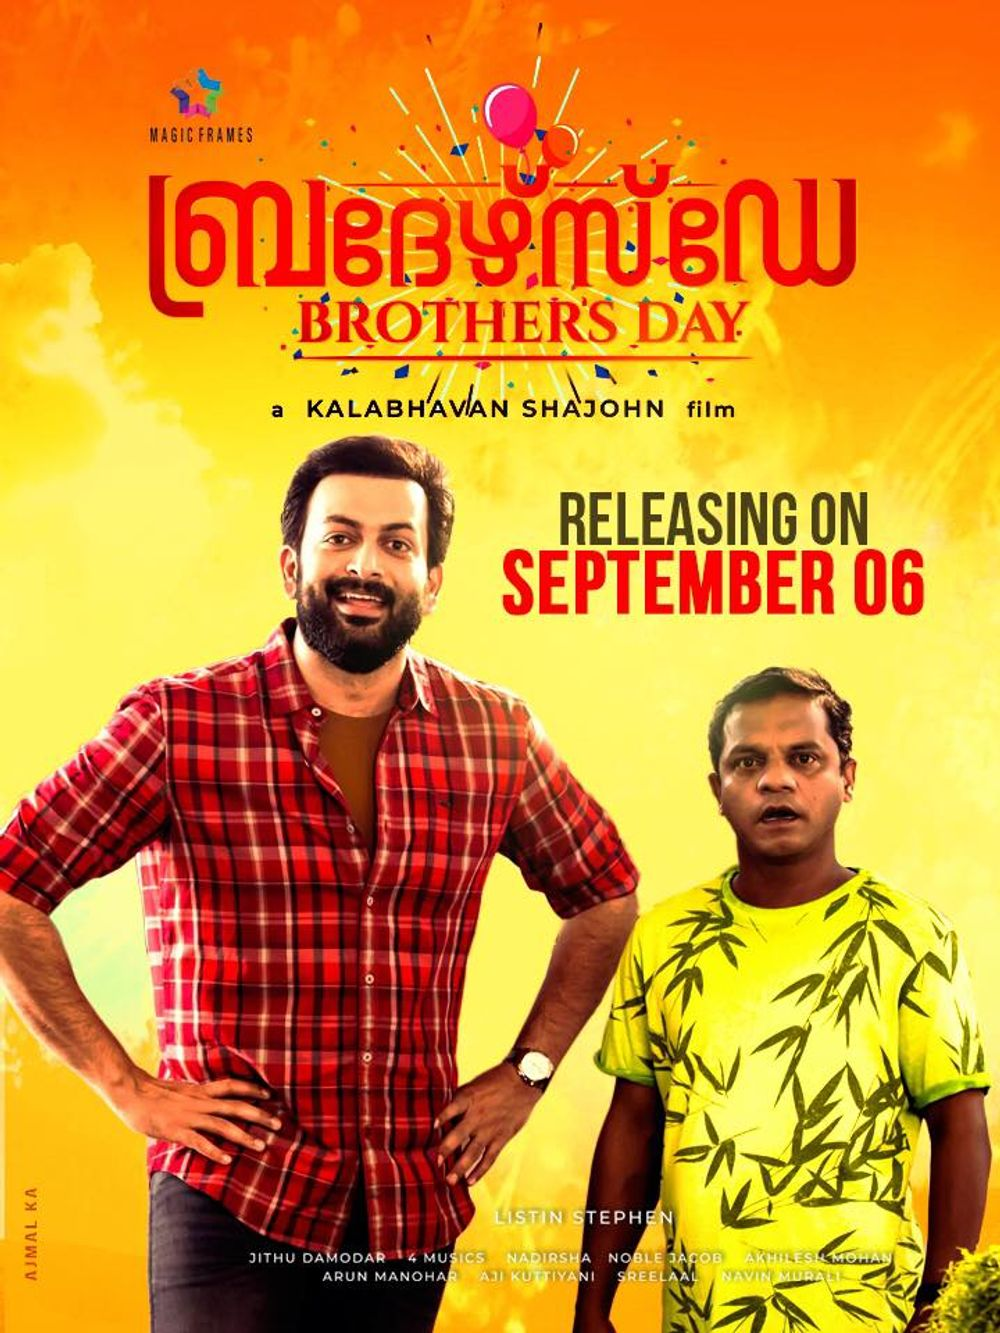 Brothers Day Movie Review